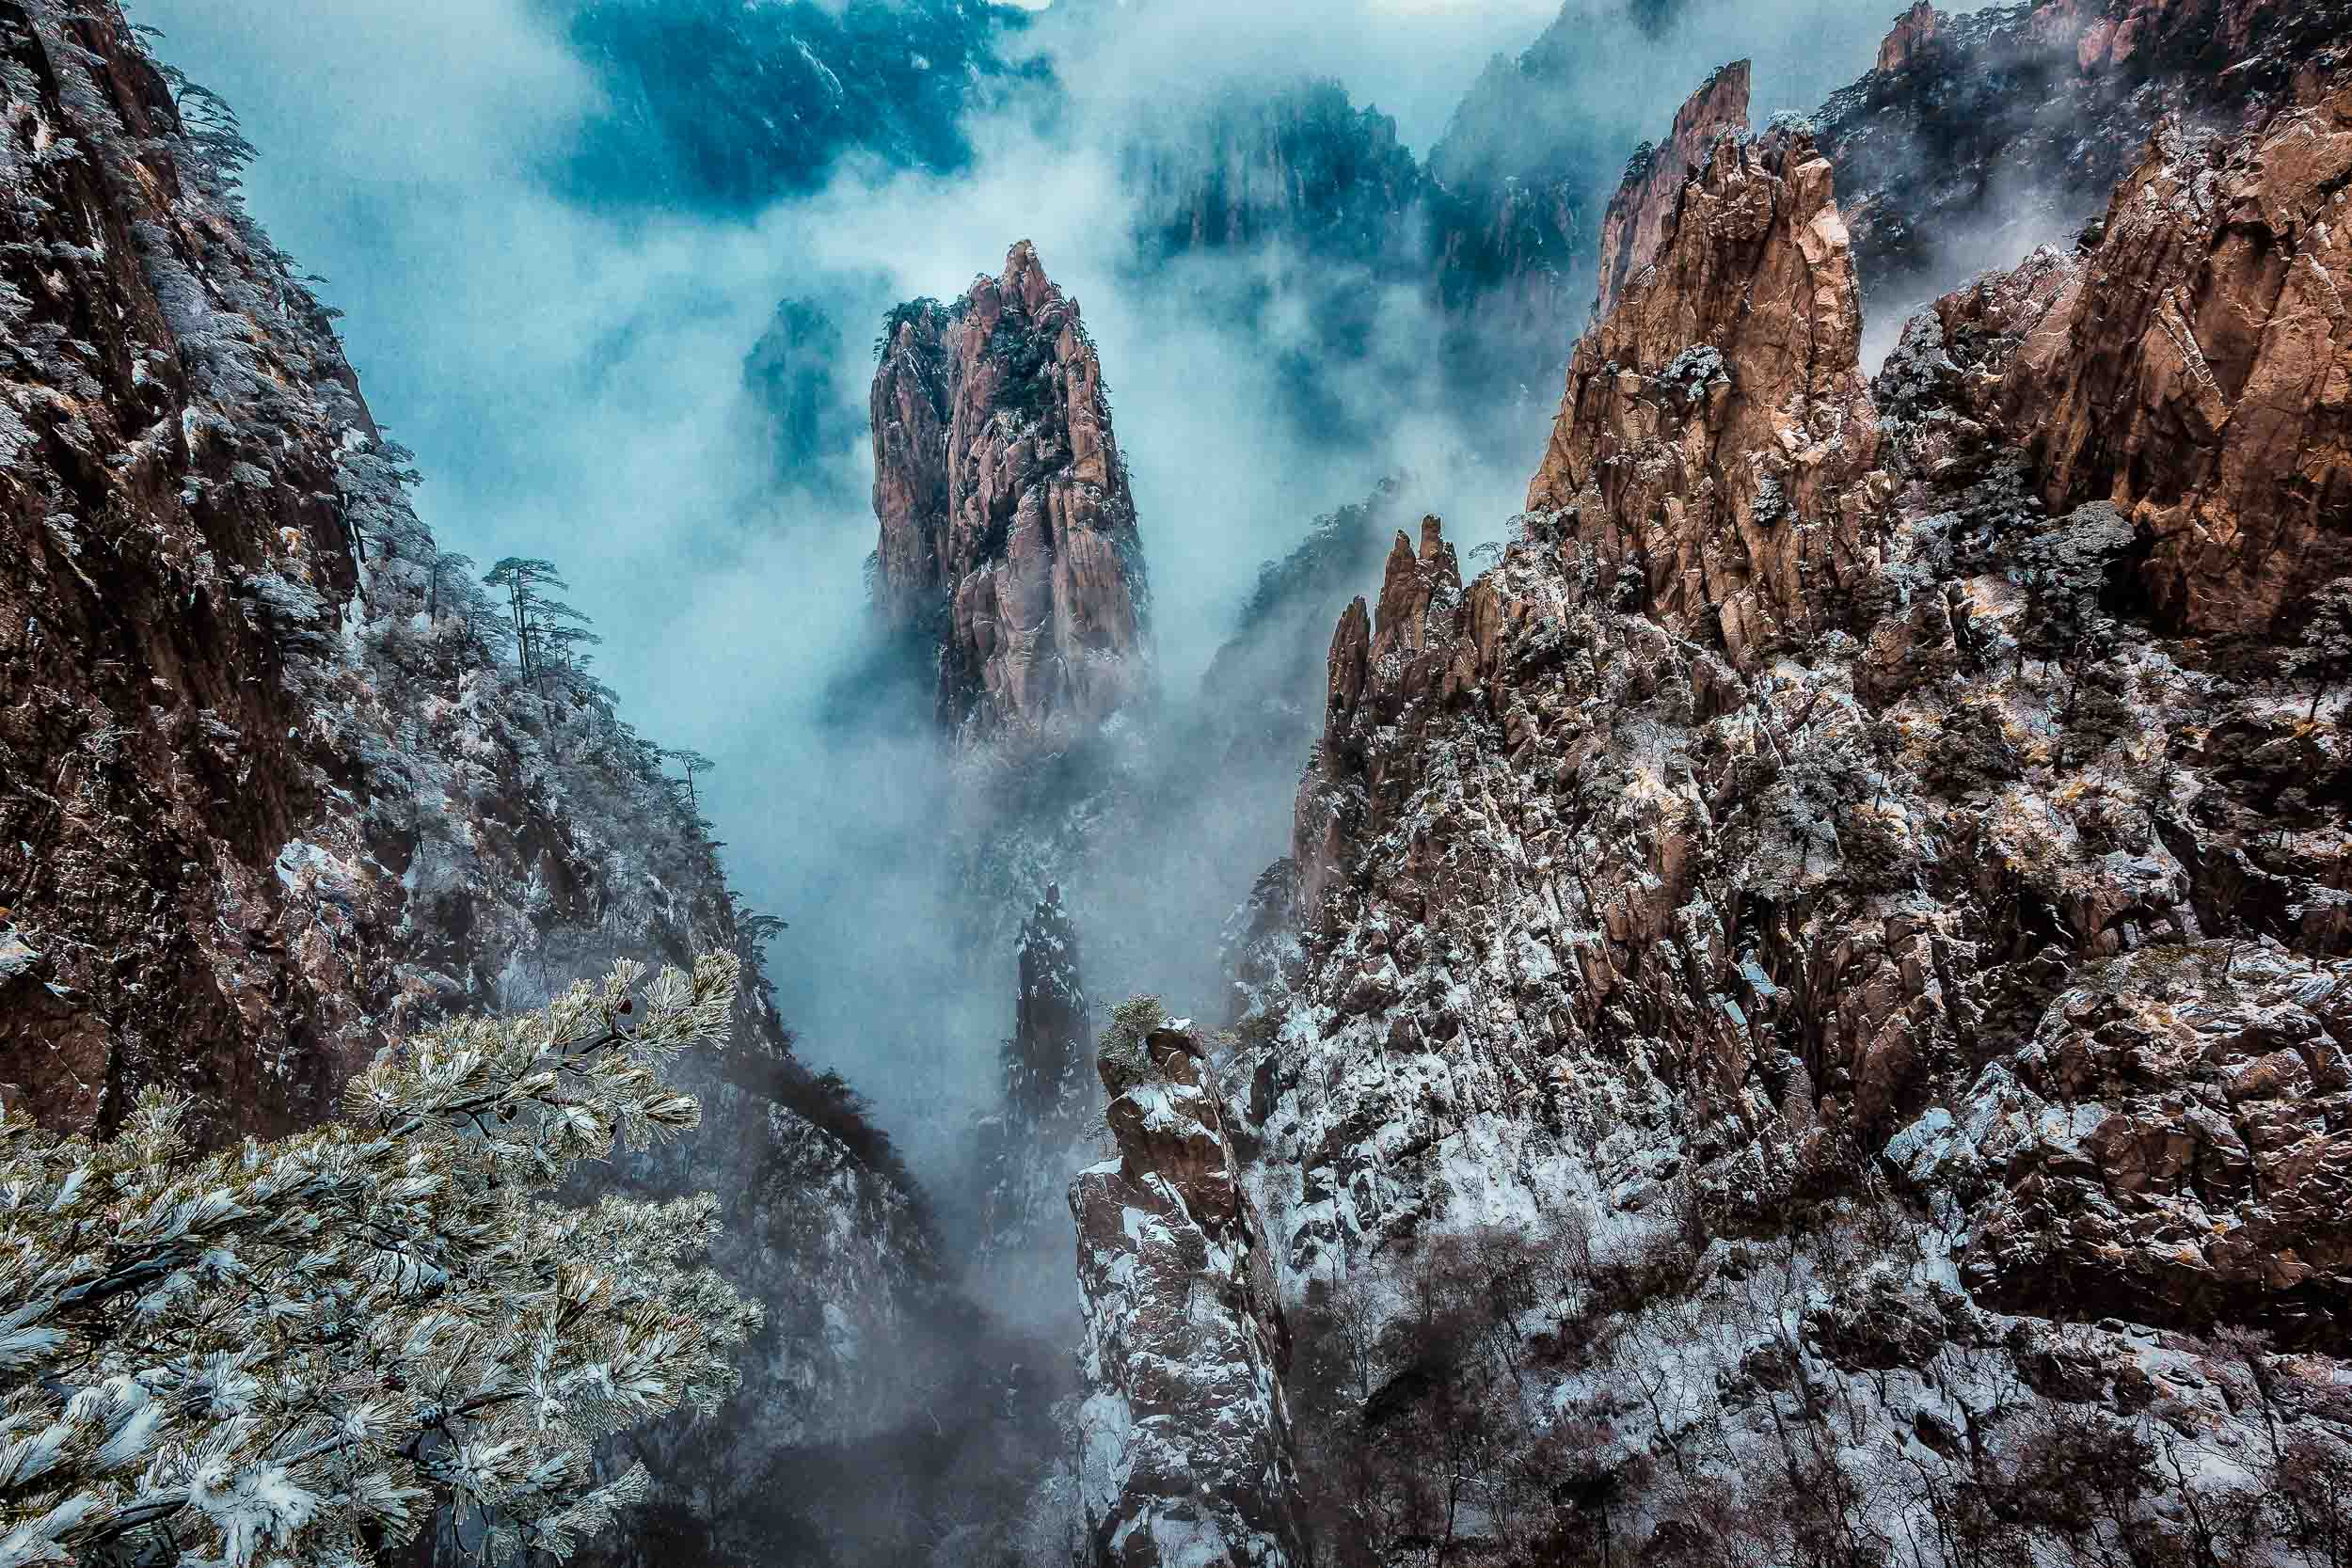 Mist swirling around peaks of stone on    Huangshan    (i.e., Yellow Mountain),    China   .